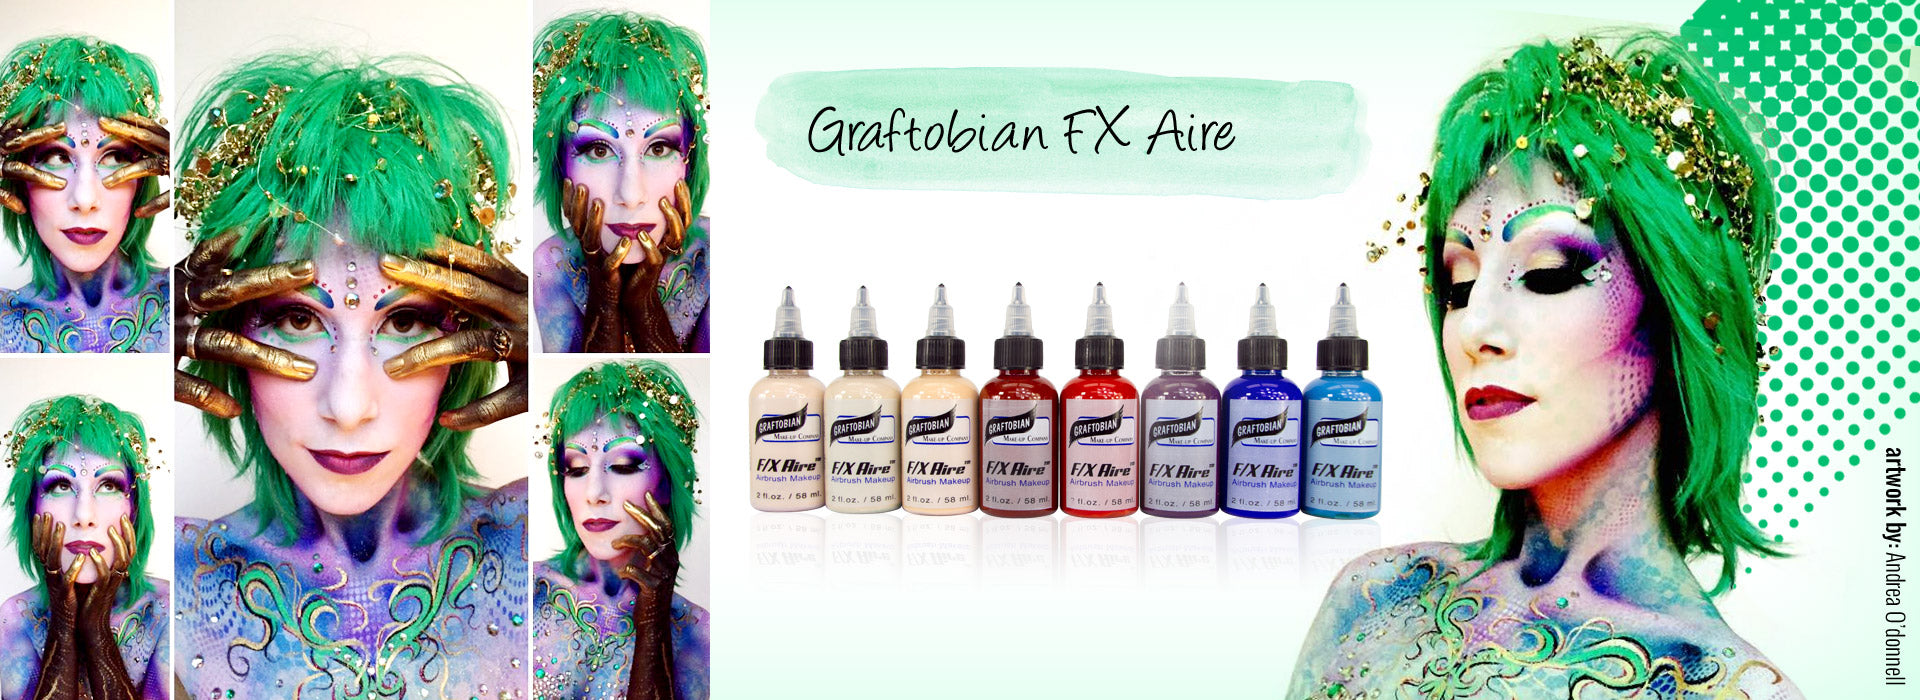 Graftobian FX Aire Hybrid Airbrush Makeup